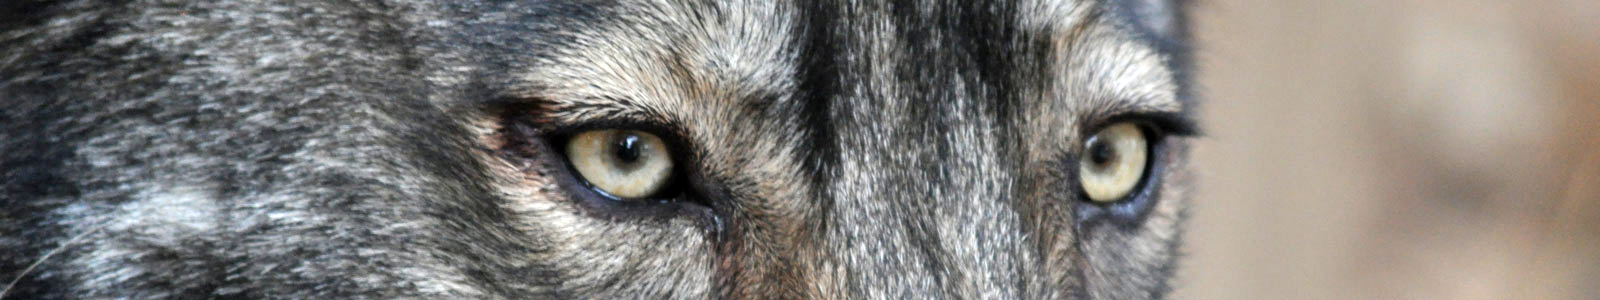 Texas Wolfdog Project History Header Image